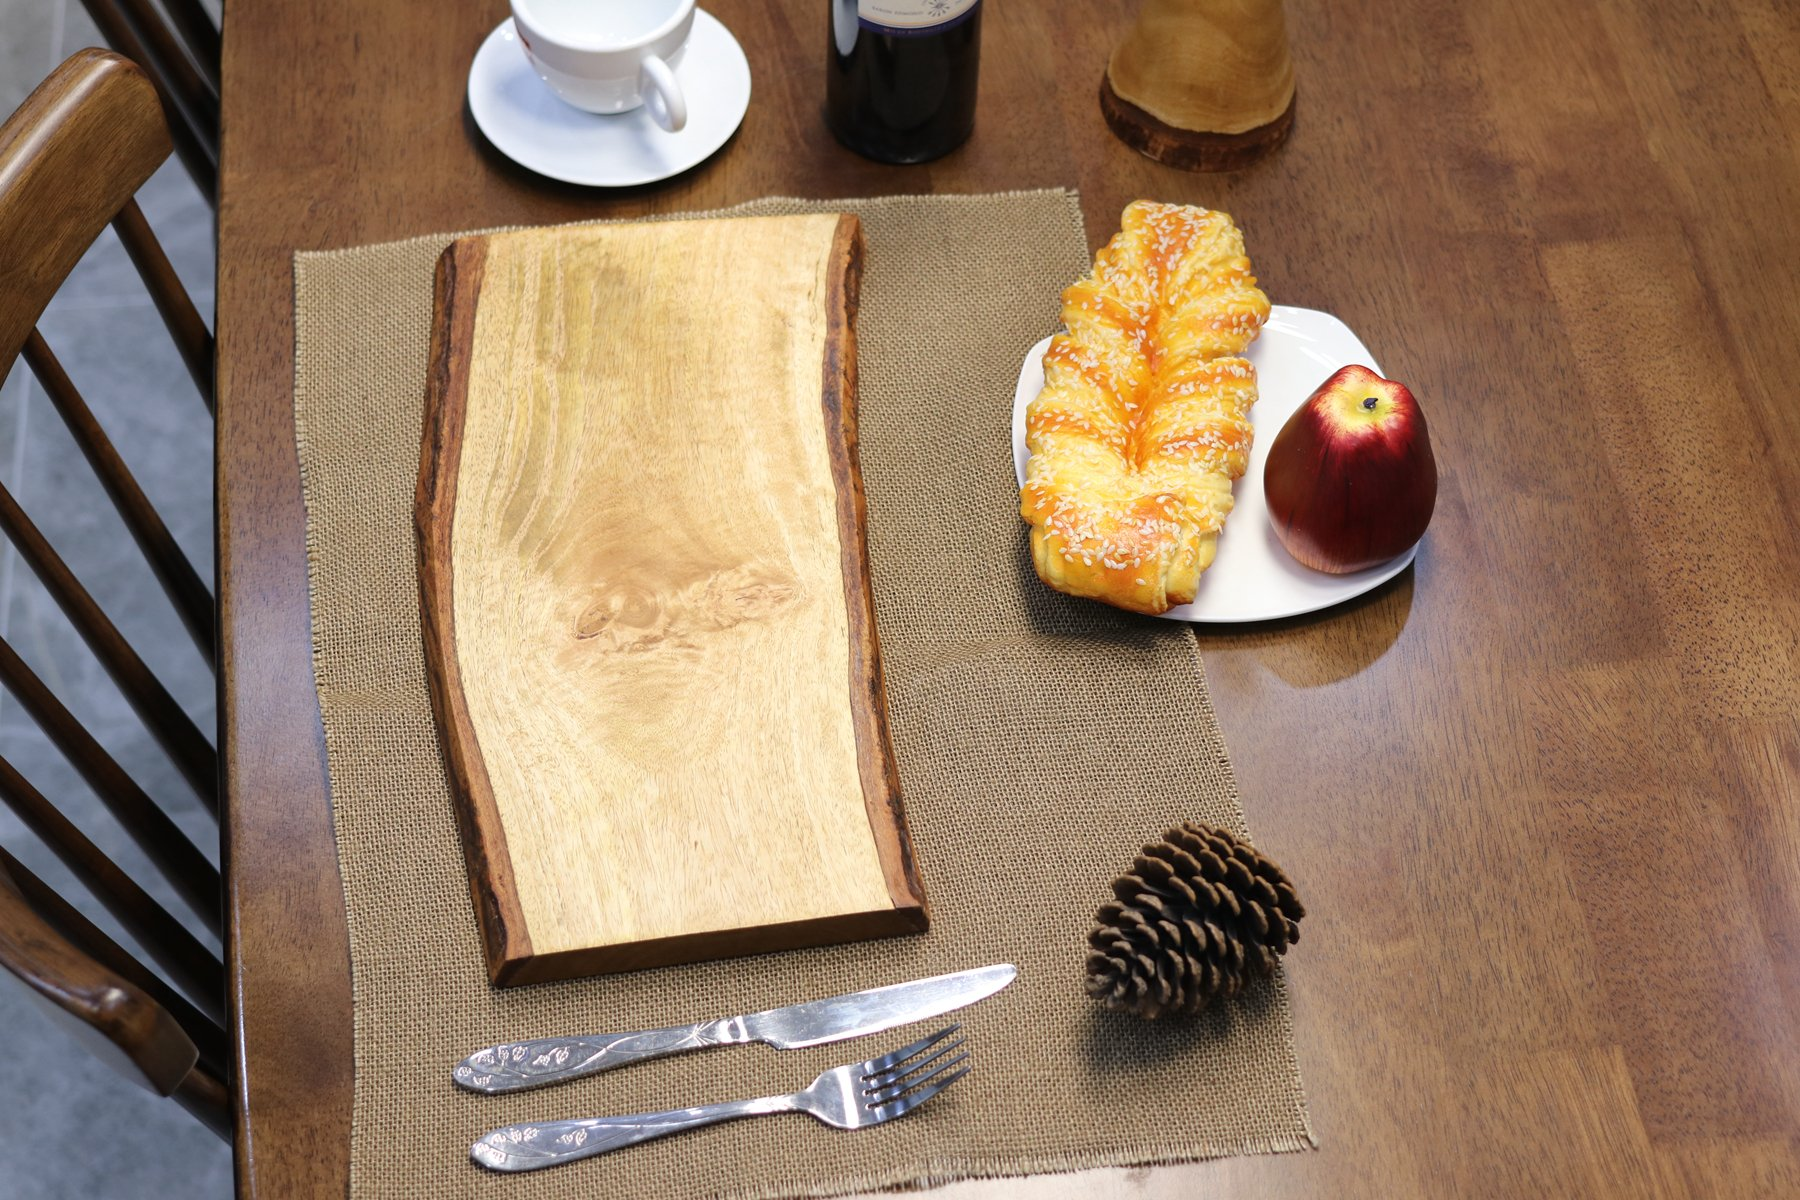 MOONSTONE Wood Cutting Board Natural Solid Wood Hand Crafted, Food Serving Cheese Pizza Plate ,Decorative, Size 8''x15''x1.2'' Inch 2.2LB by MOONSTONE (Image #7)